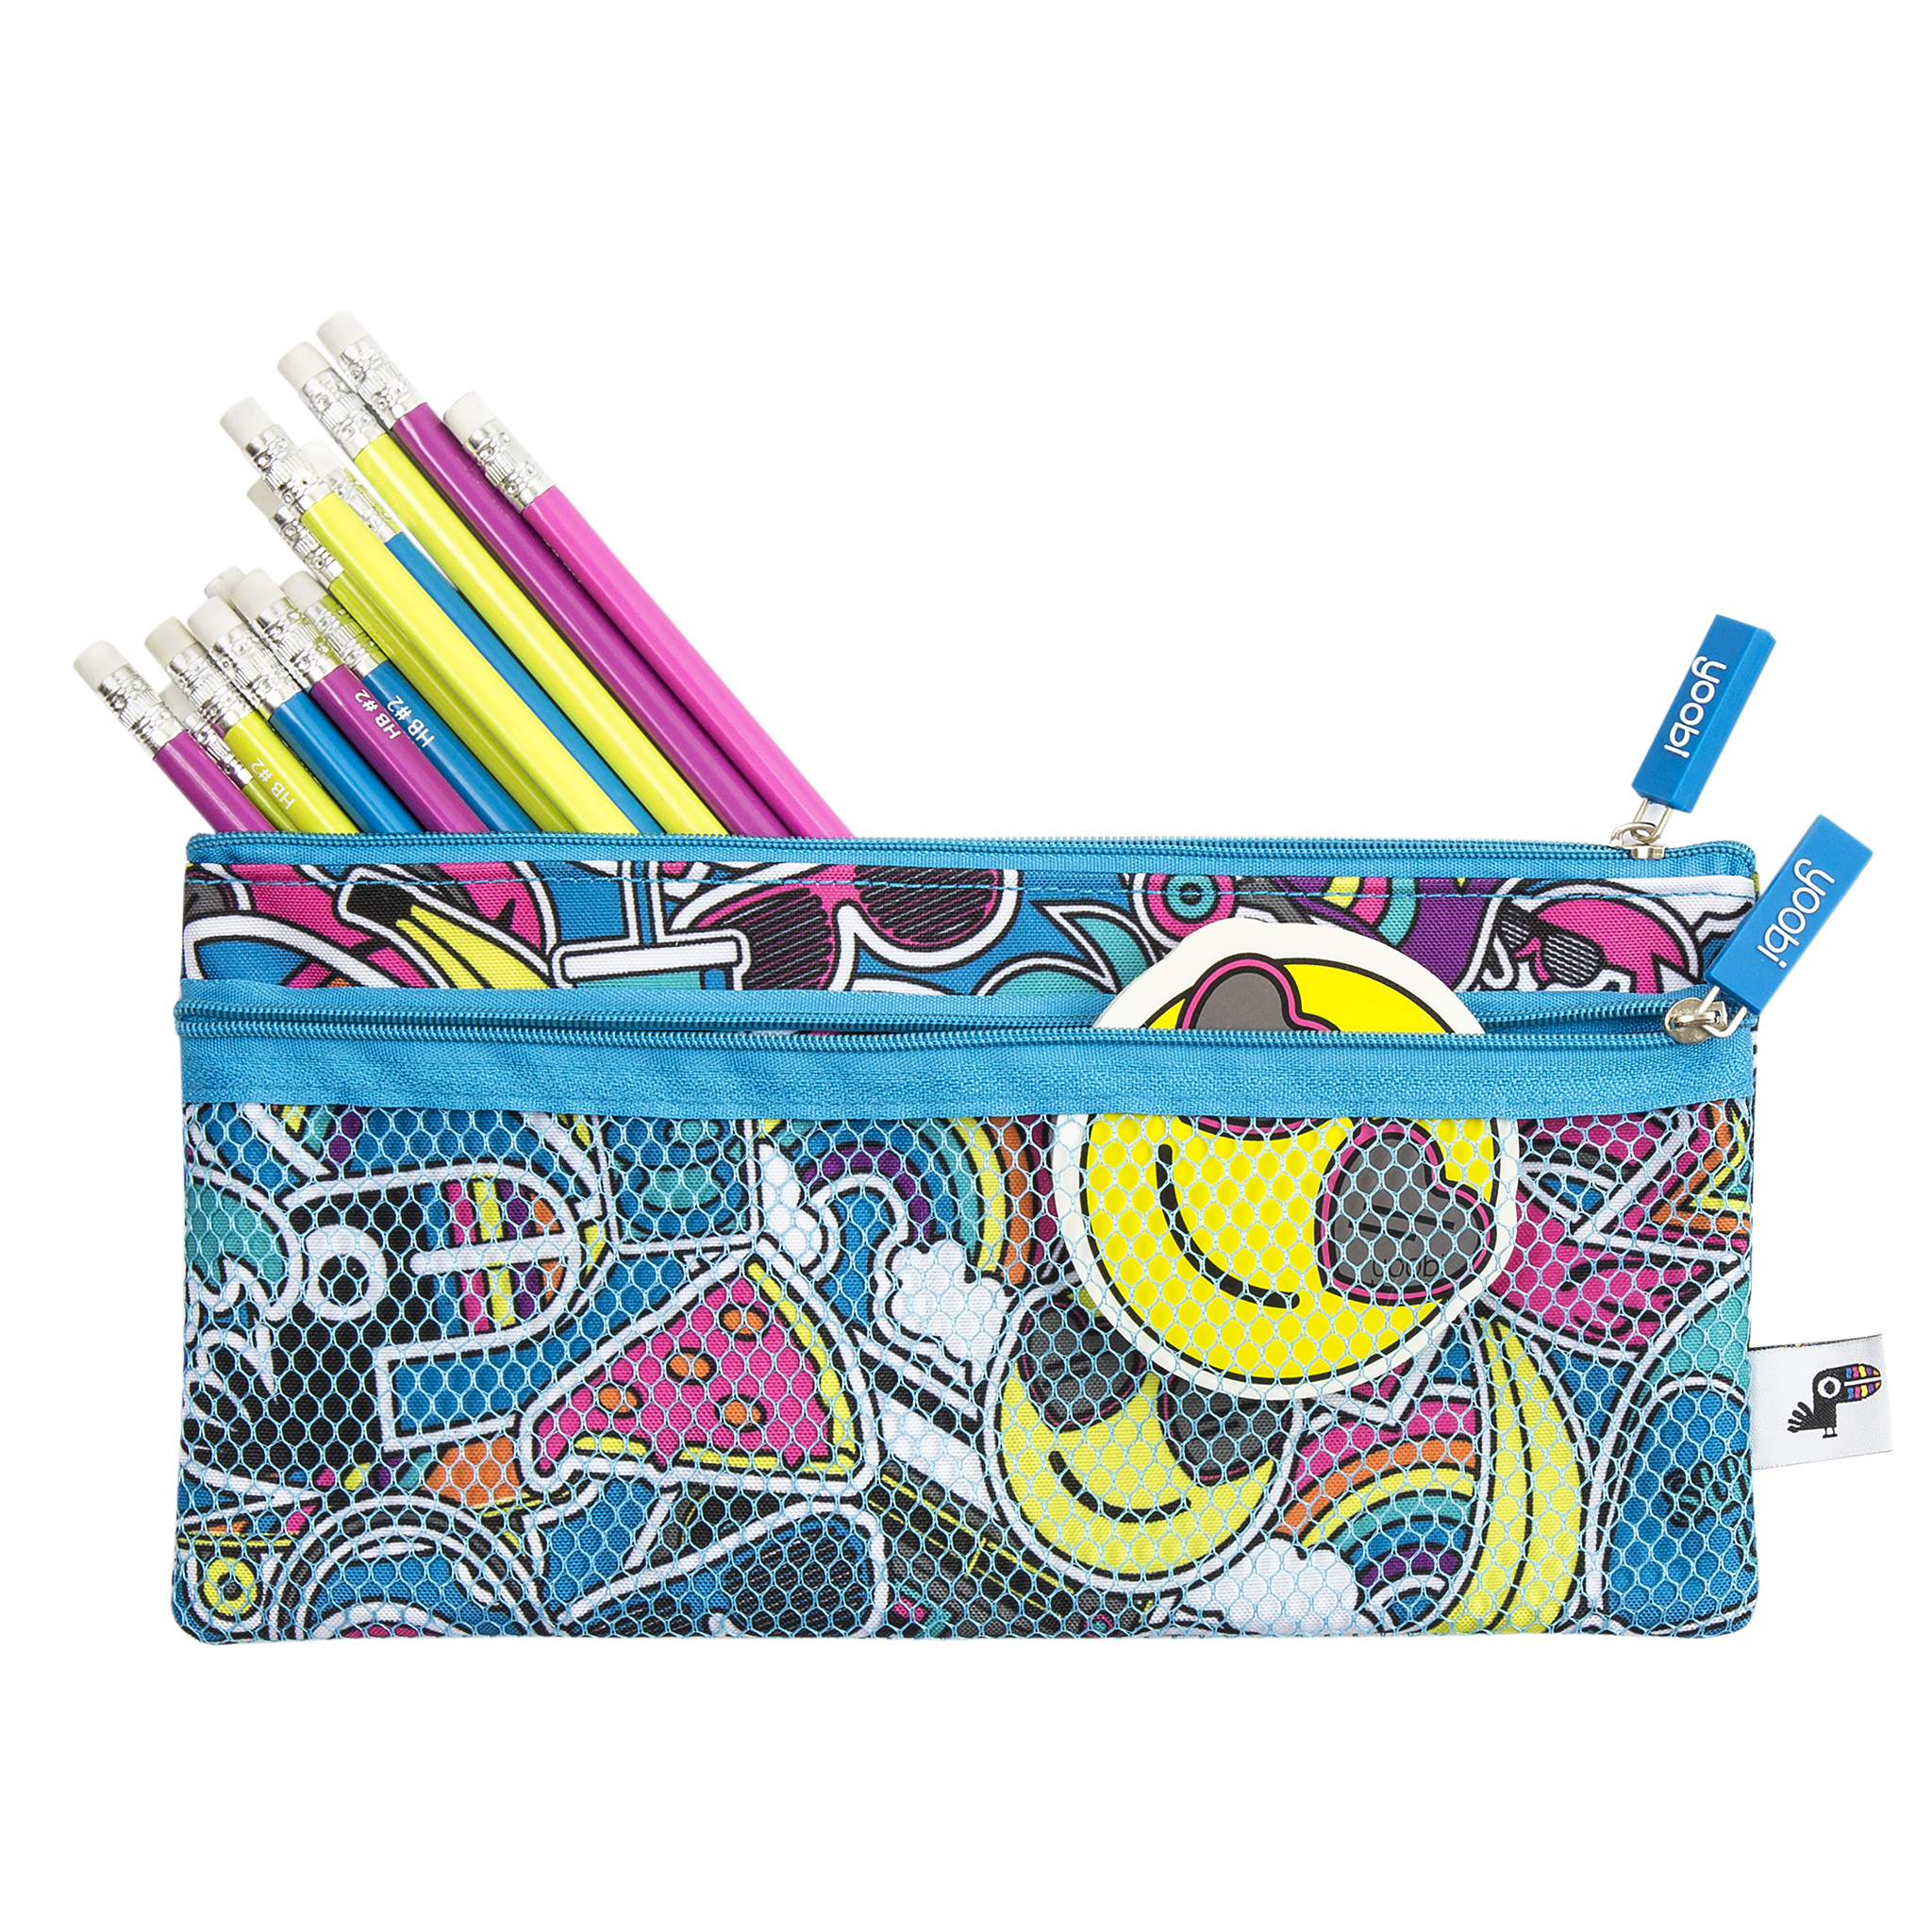 Cute school supplies that actually give back for a good cause